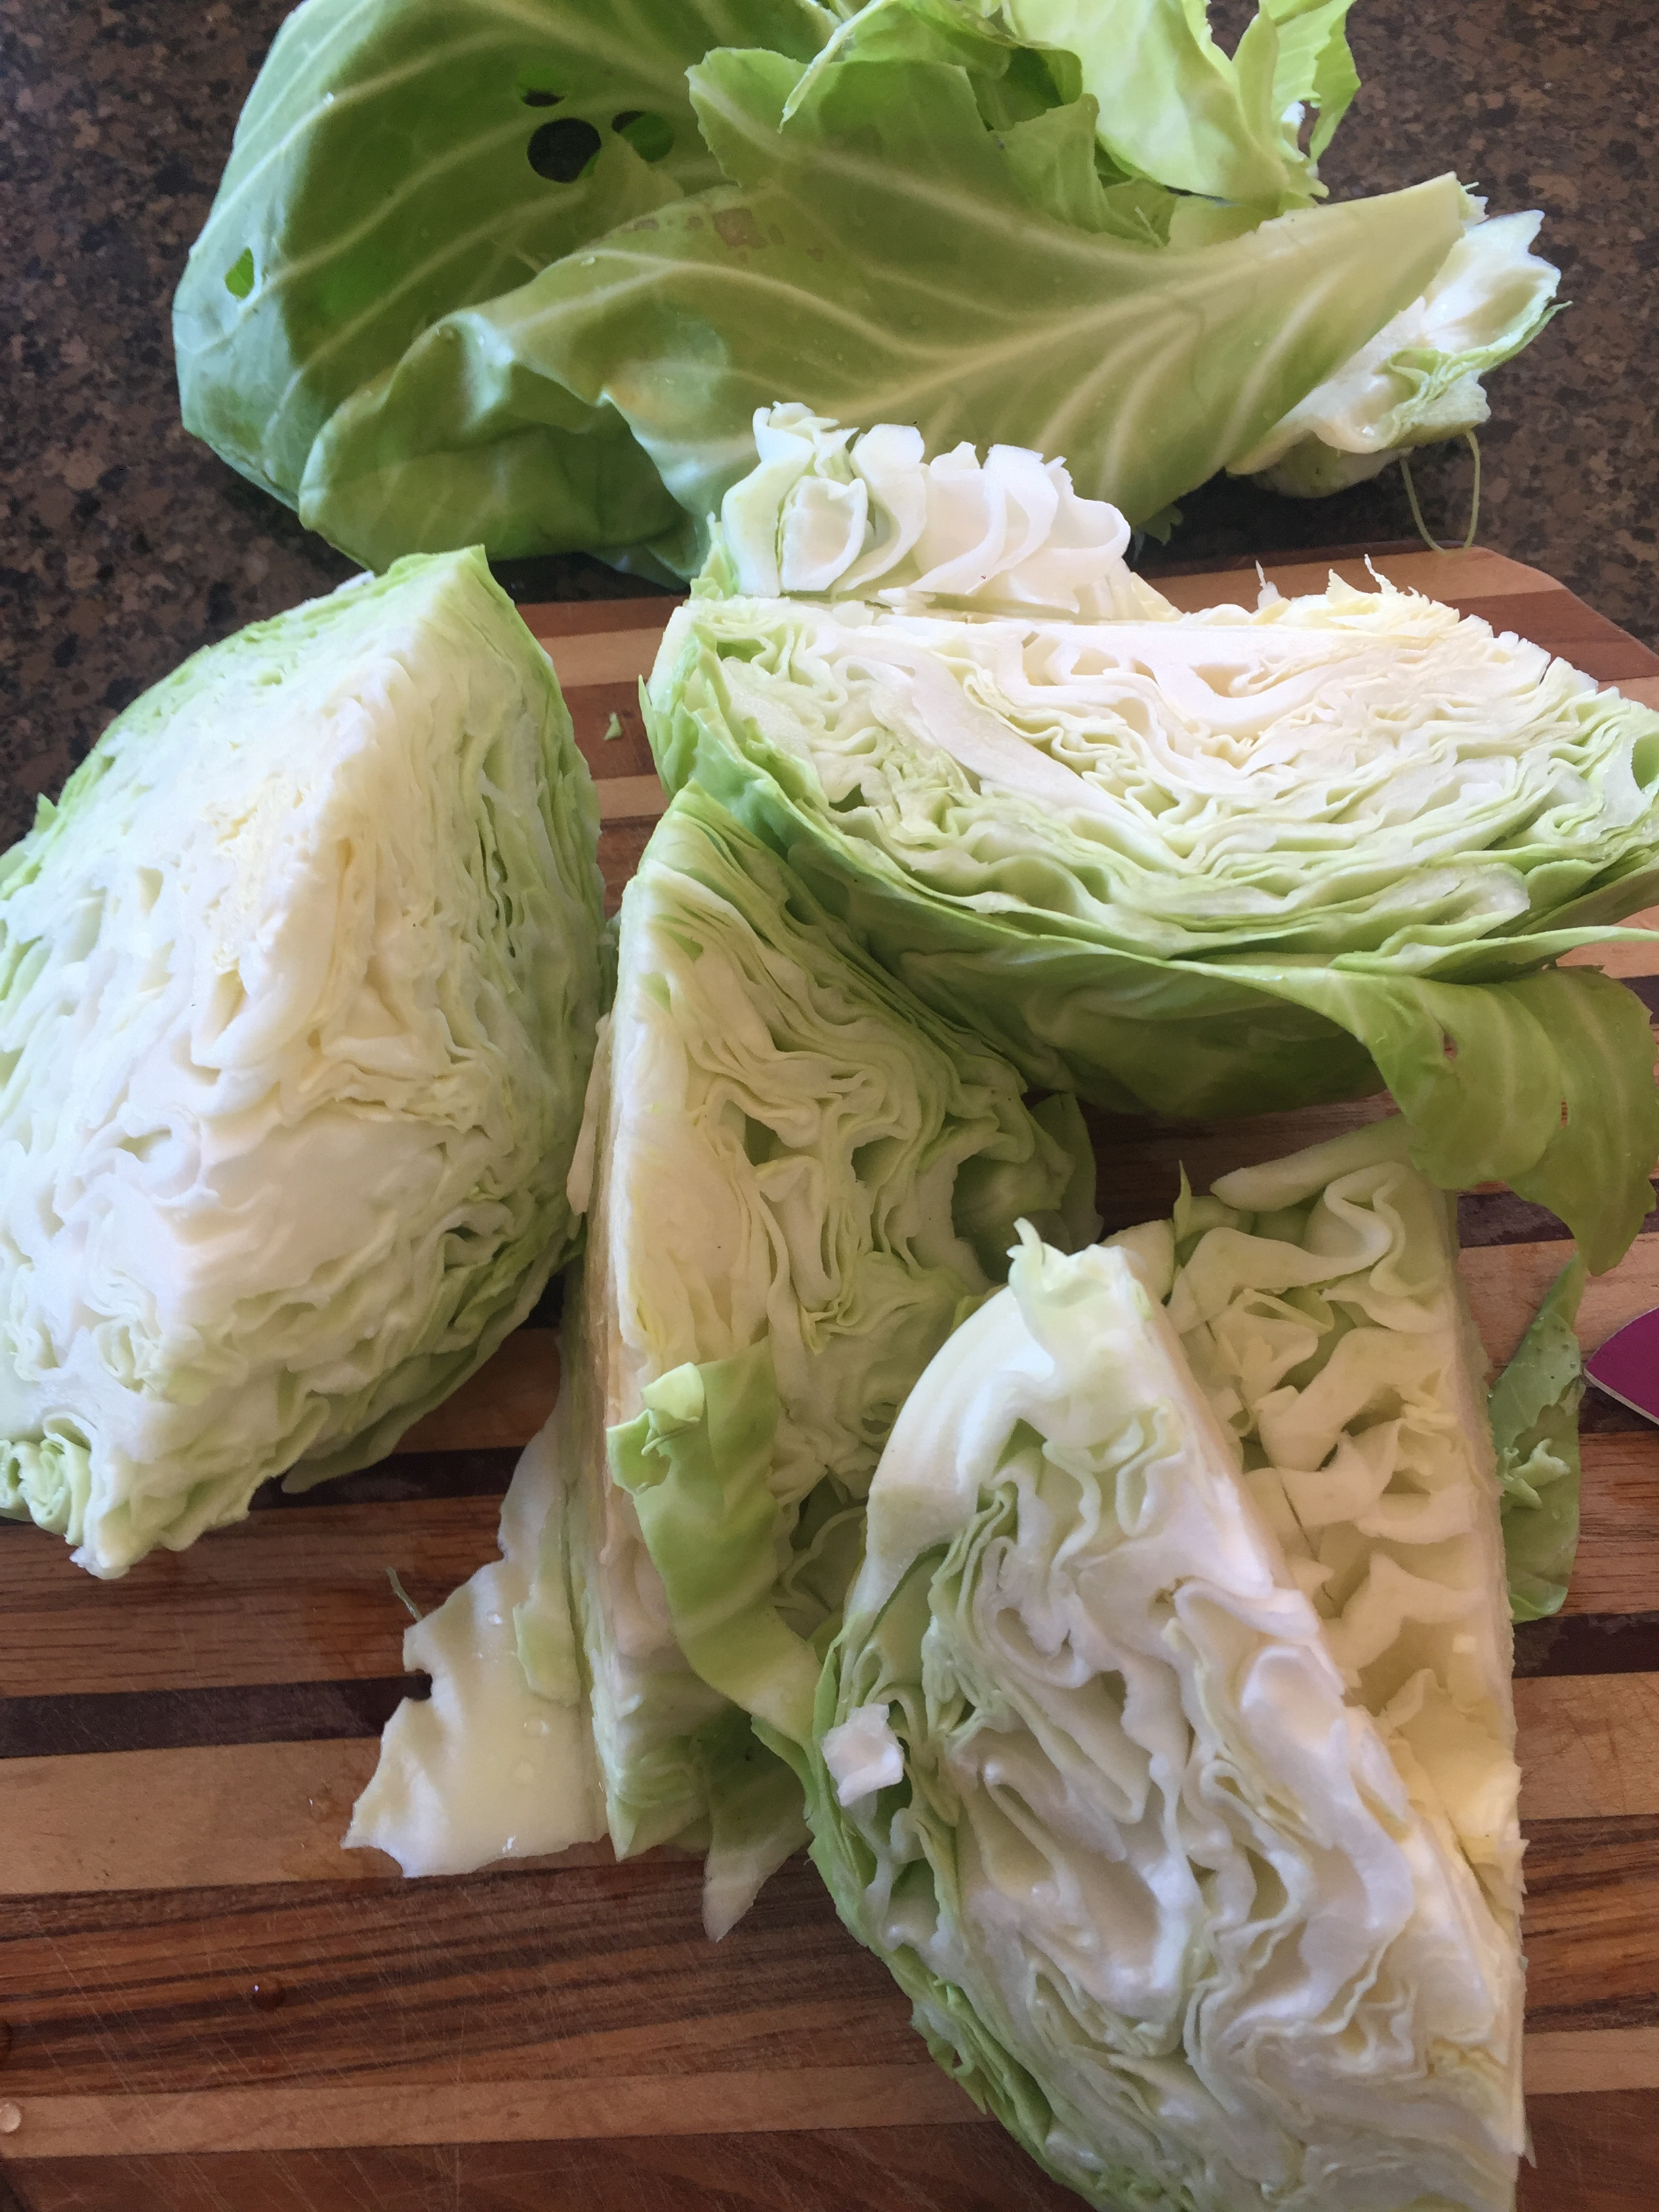 Here is one cabbage cored and cut into fourths---all ready for shredding/slicing.  You can see the outer leaves at the top of the picture!